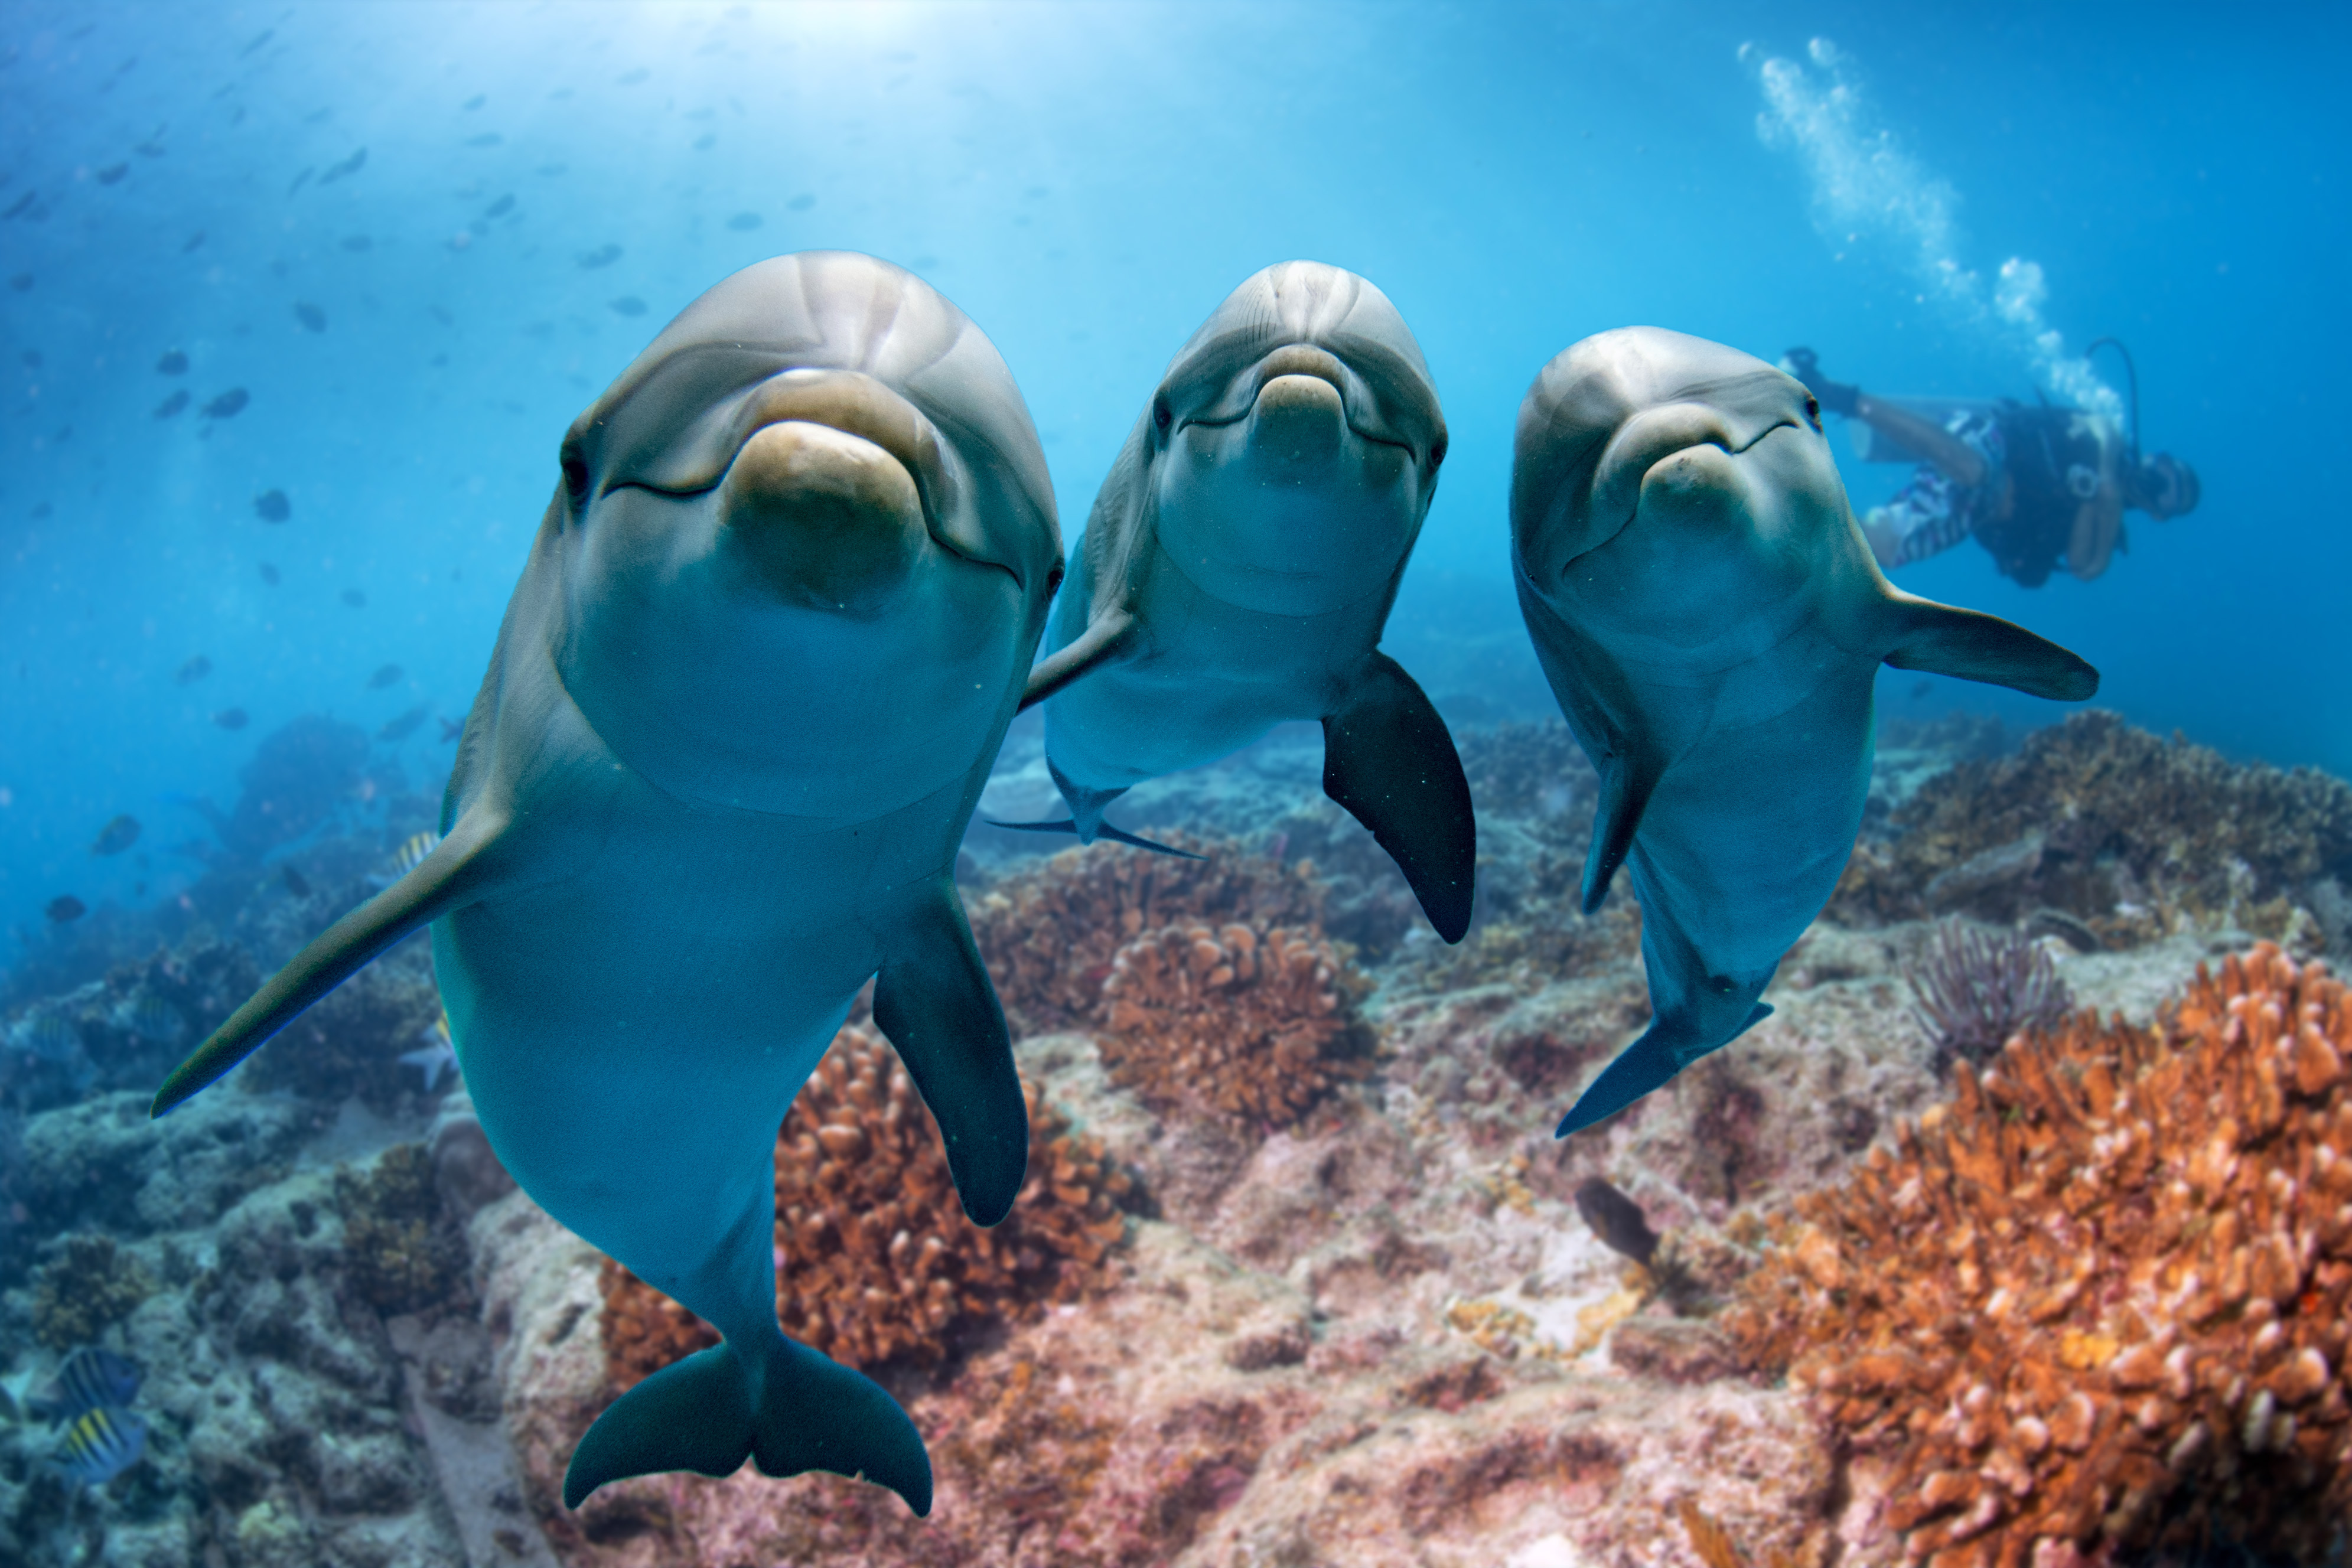 Featured Image: What Do Dolphins Symbolize?